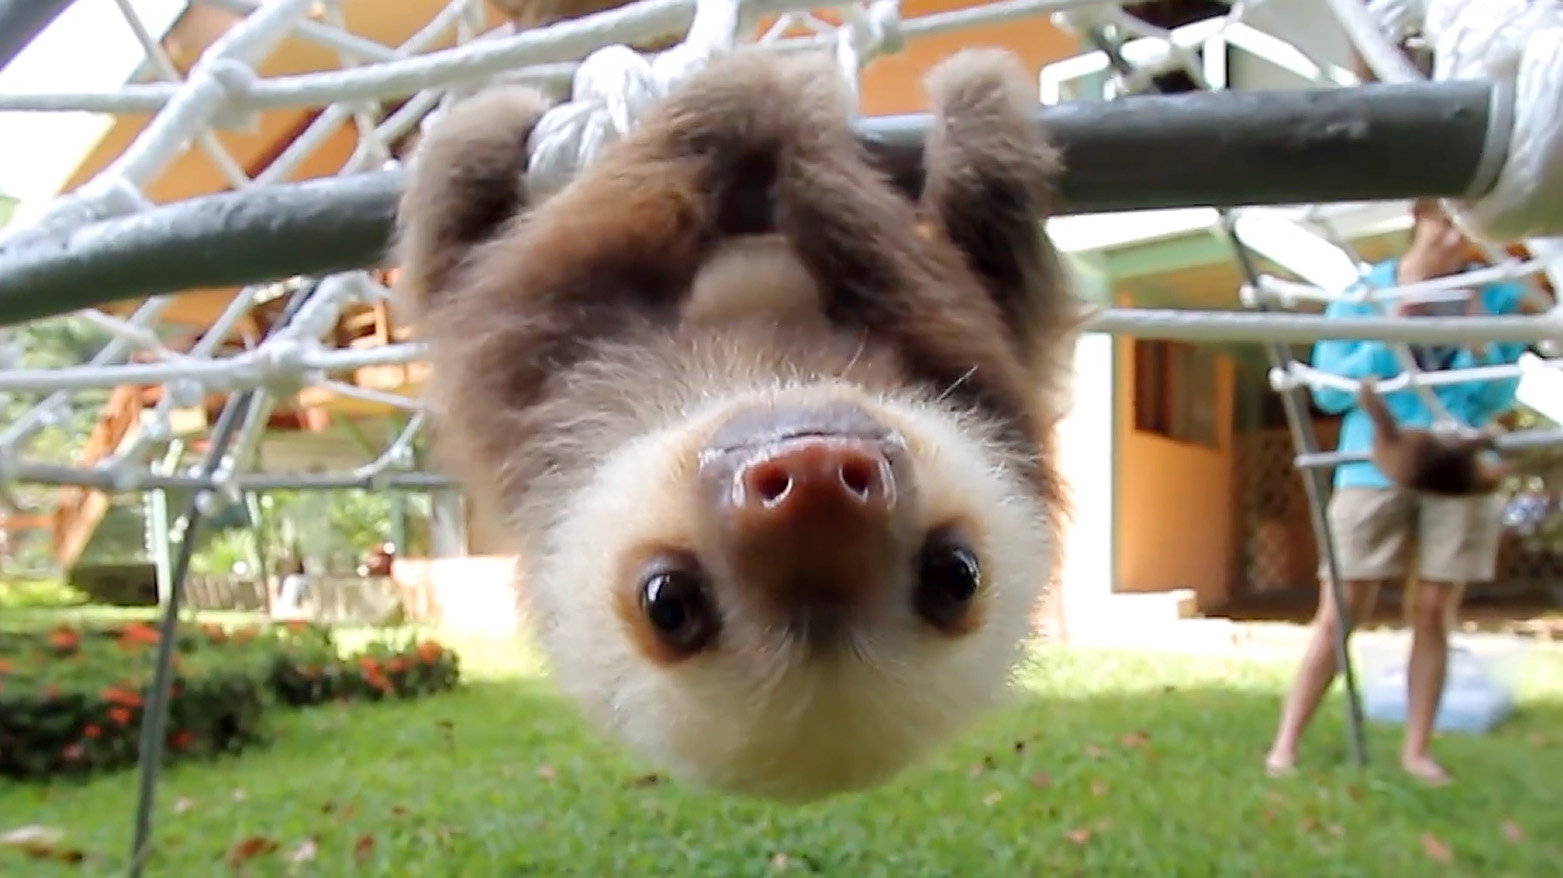 This Group Of Rescue Baby Sloths Has A Squeaky Conversation And It's Just Adorable